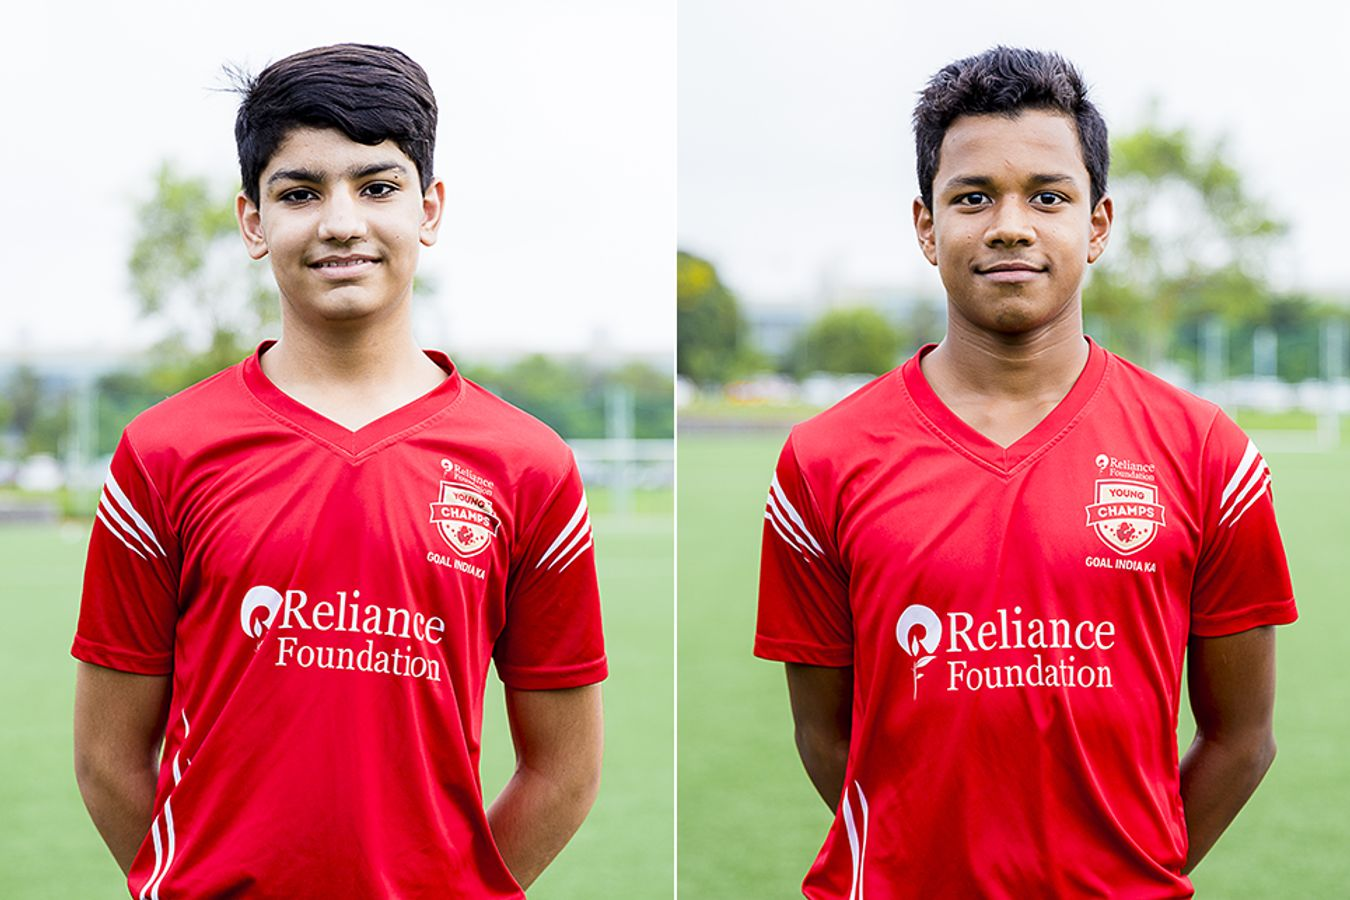 Reliance Foundation Young Champs players Ayush and Koustav